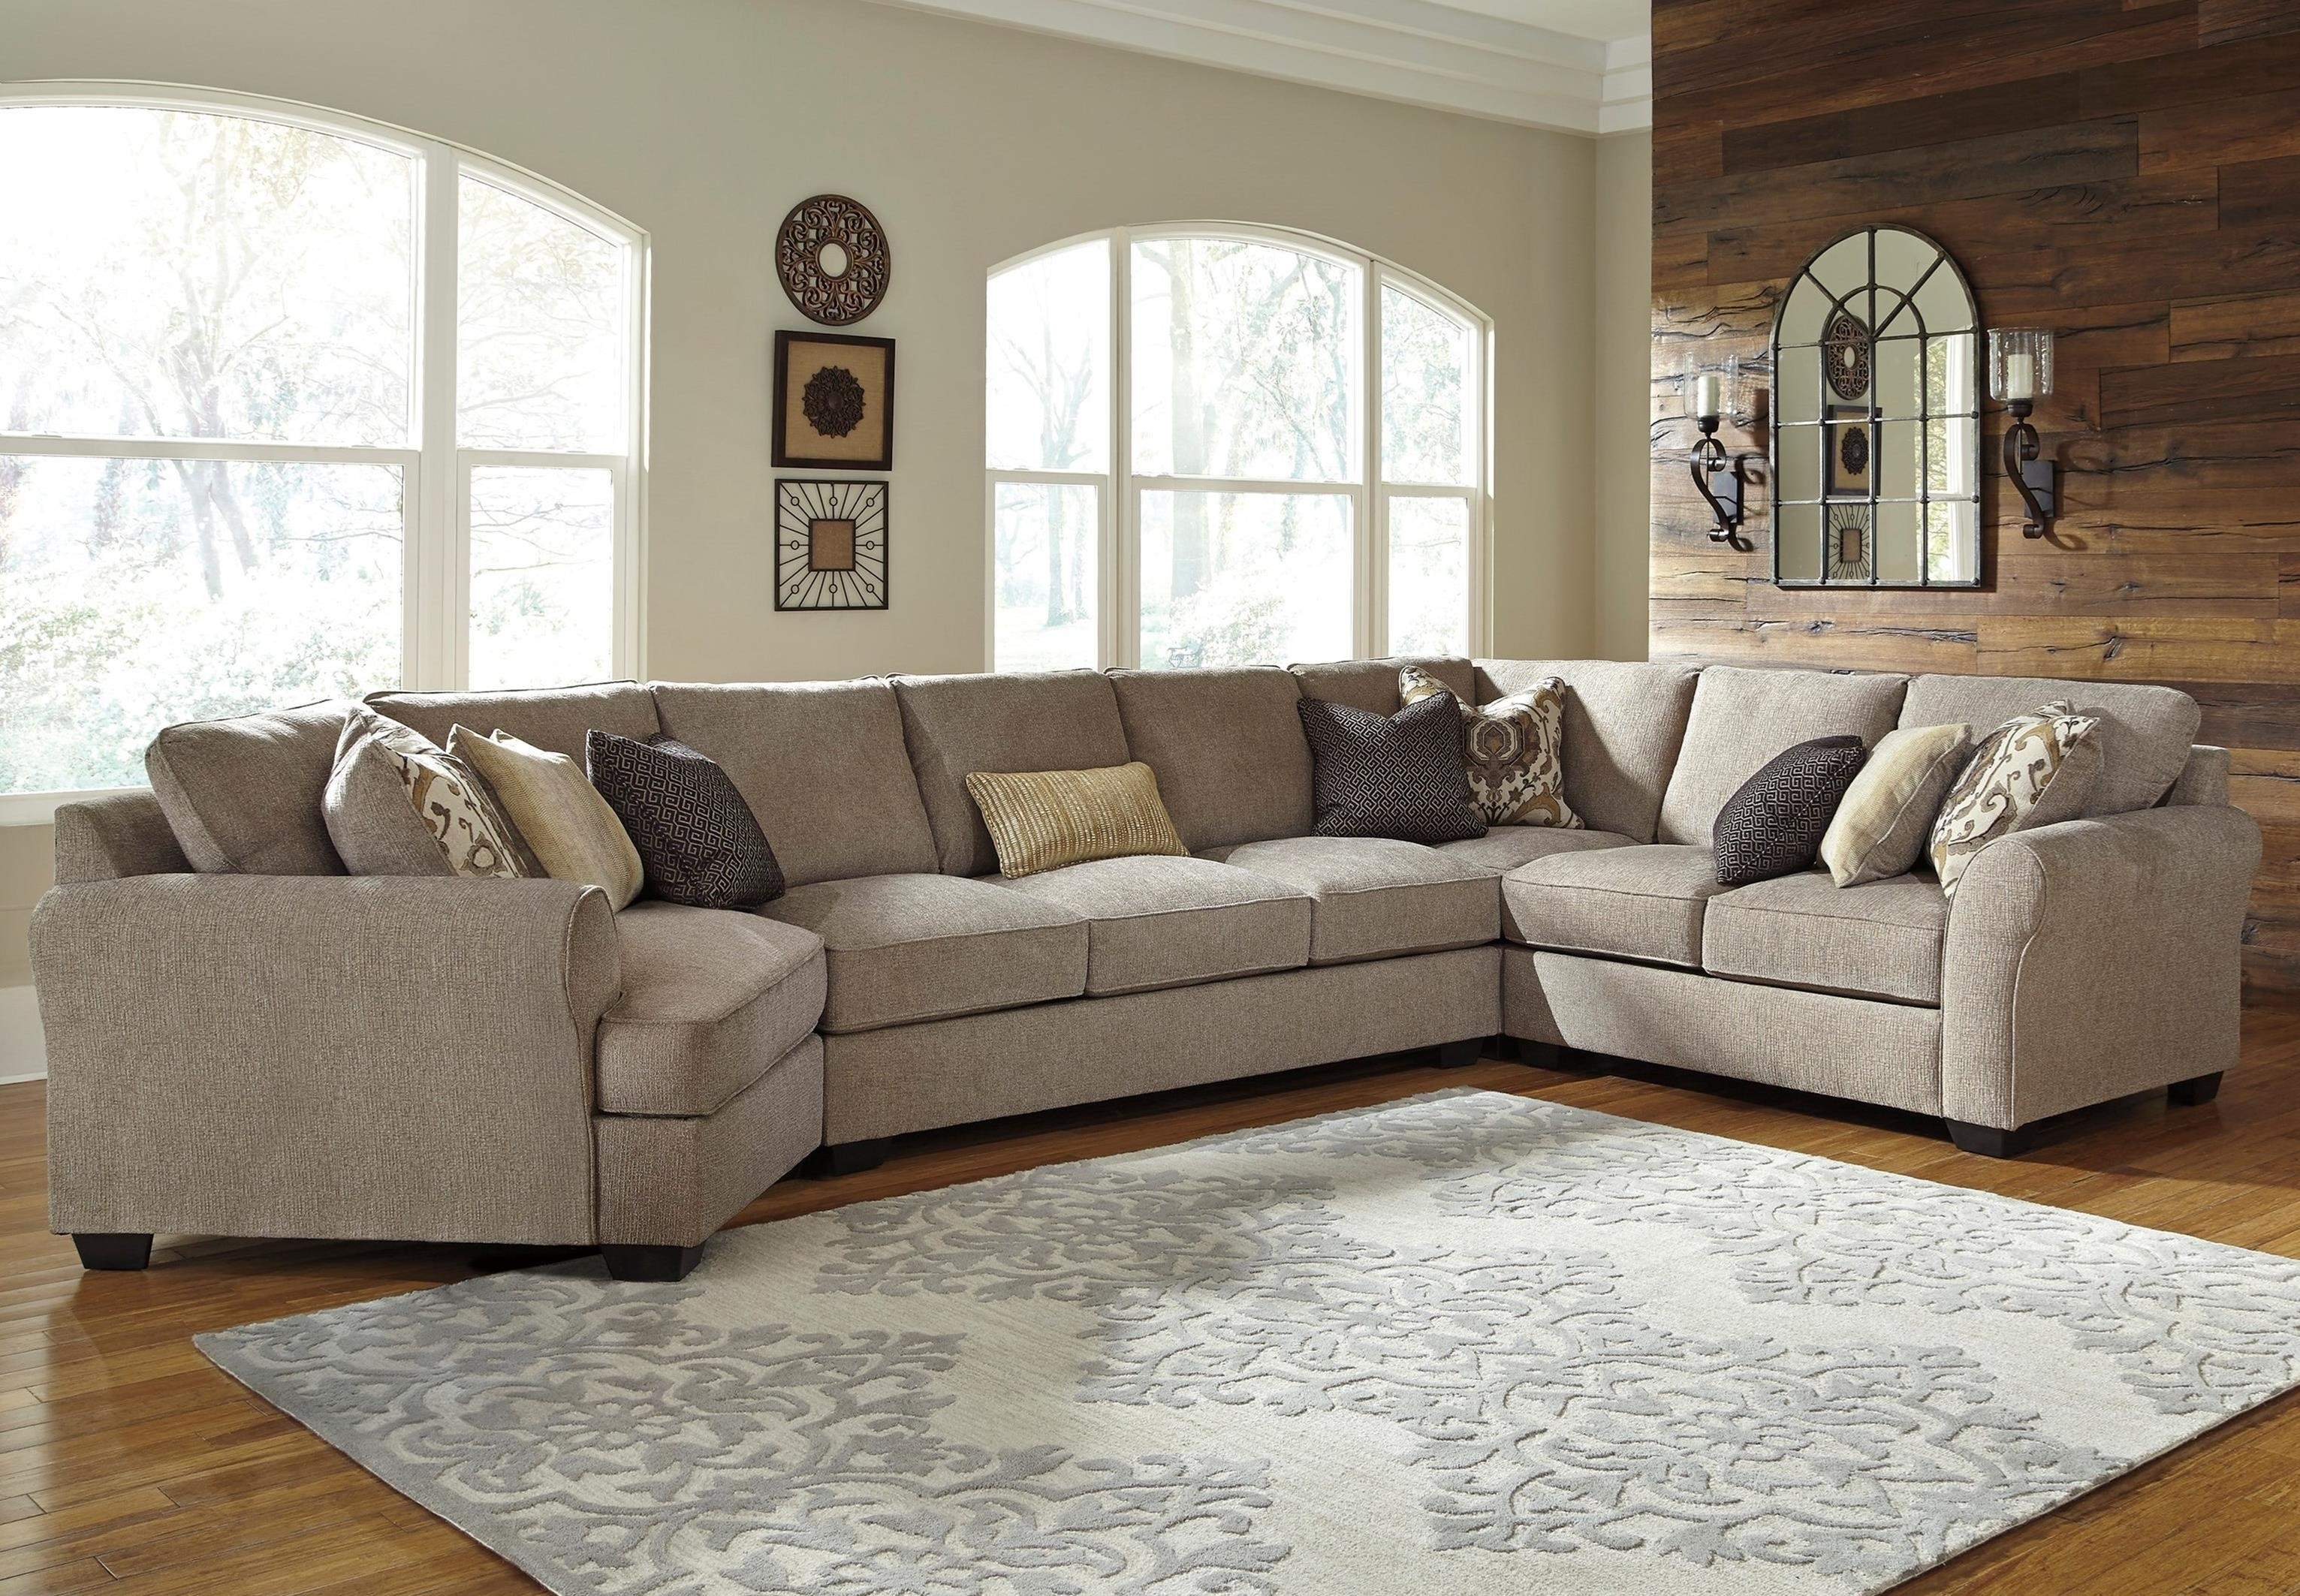 Sofa : Down Sectional Sofa Couch With Right Side Chaise L Sofas With Regard To Down Sectional Sofas (View 10 of 10)